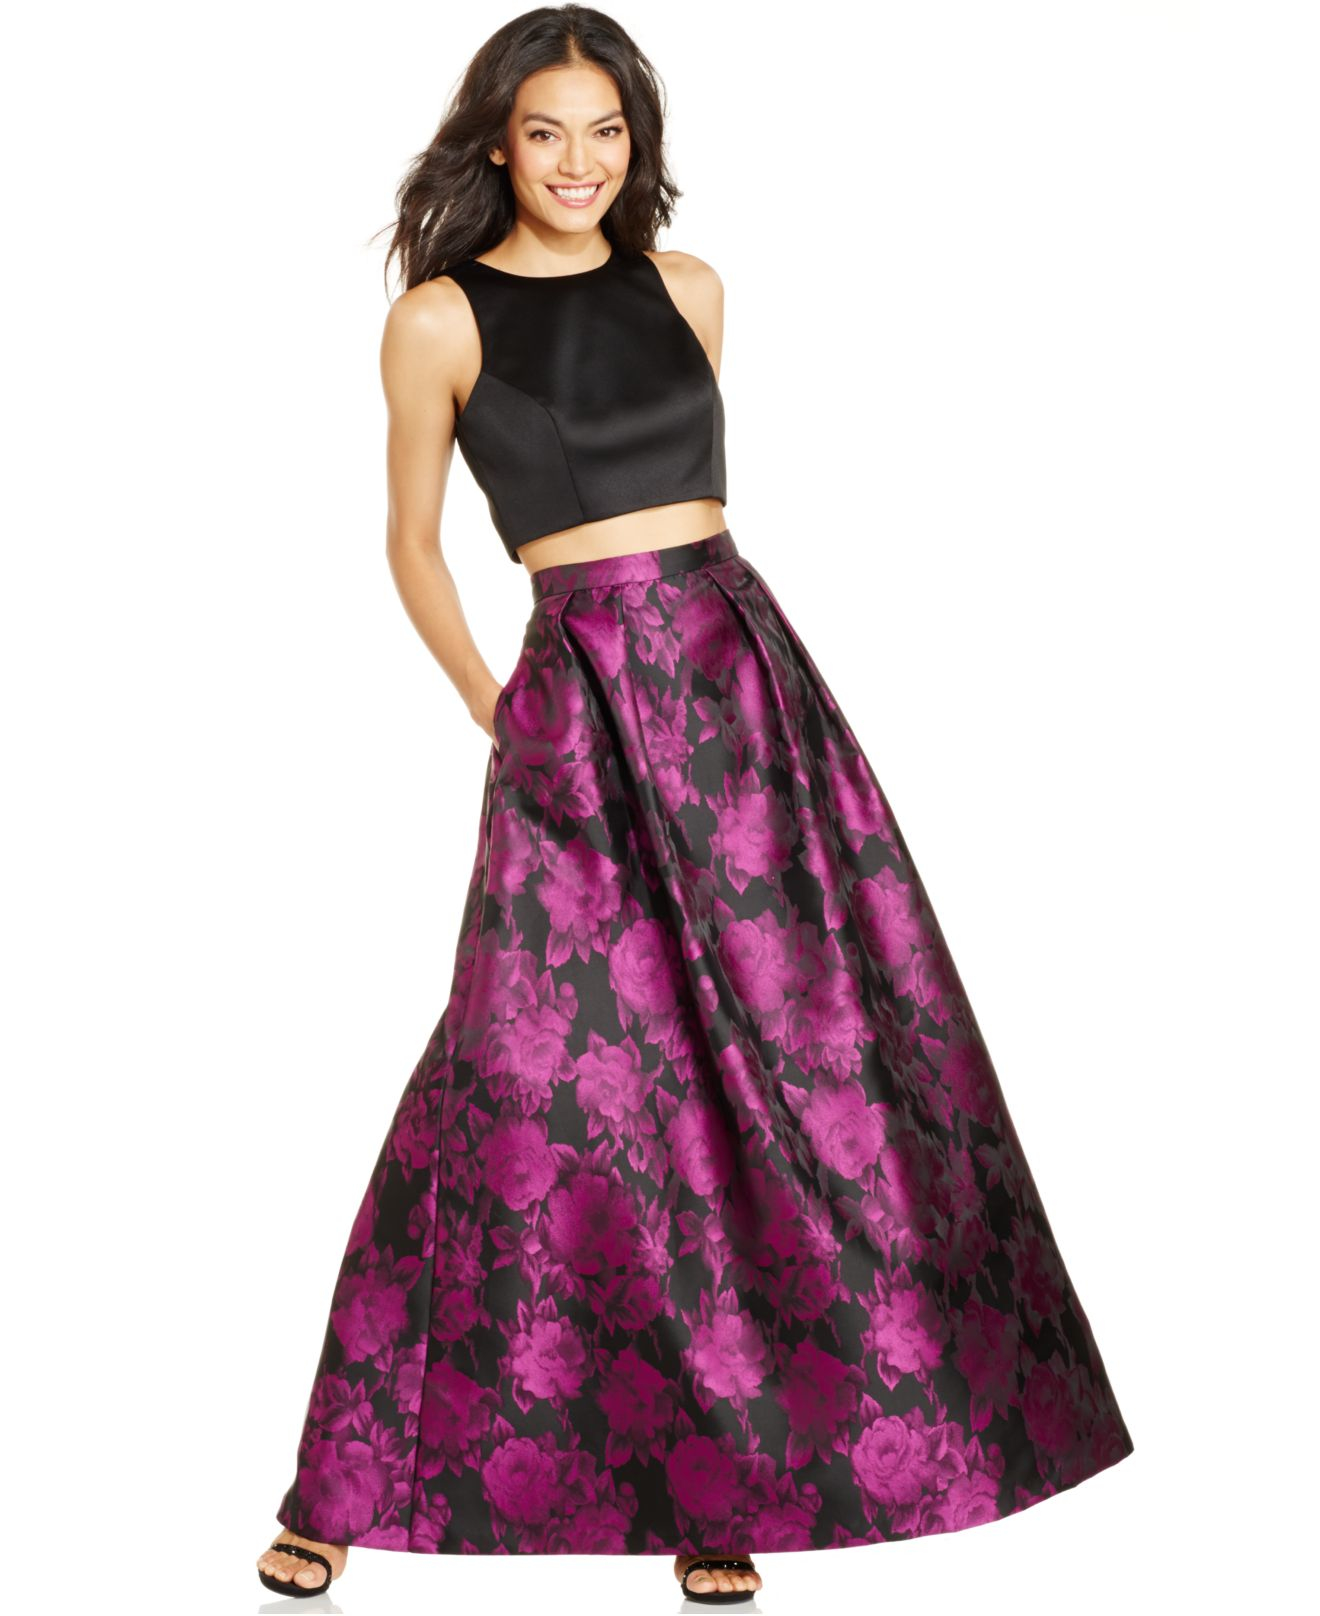 Lyst - Xscape 2-piece Floral Ball Gown in Pink